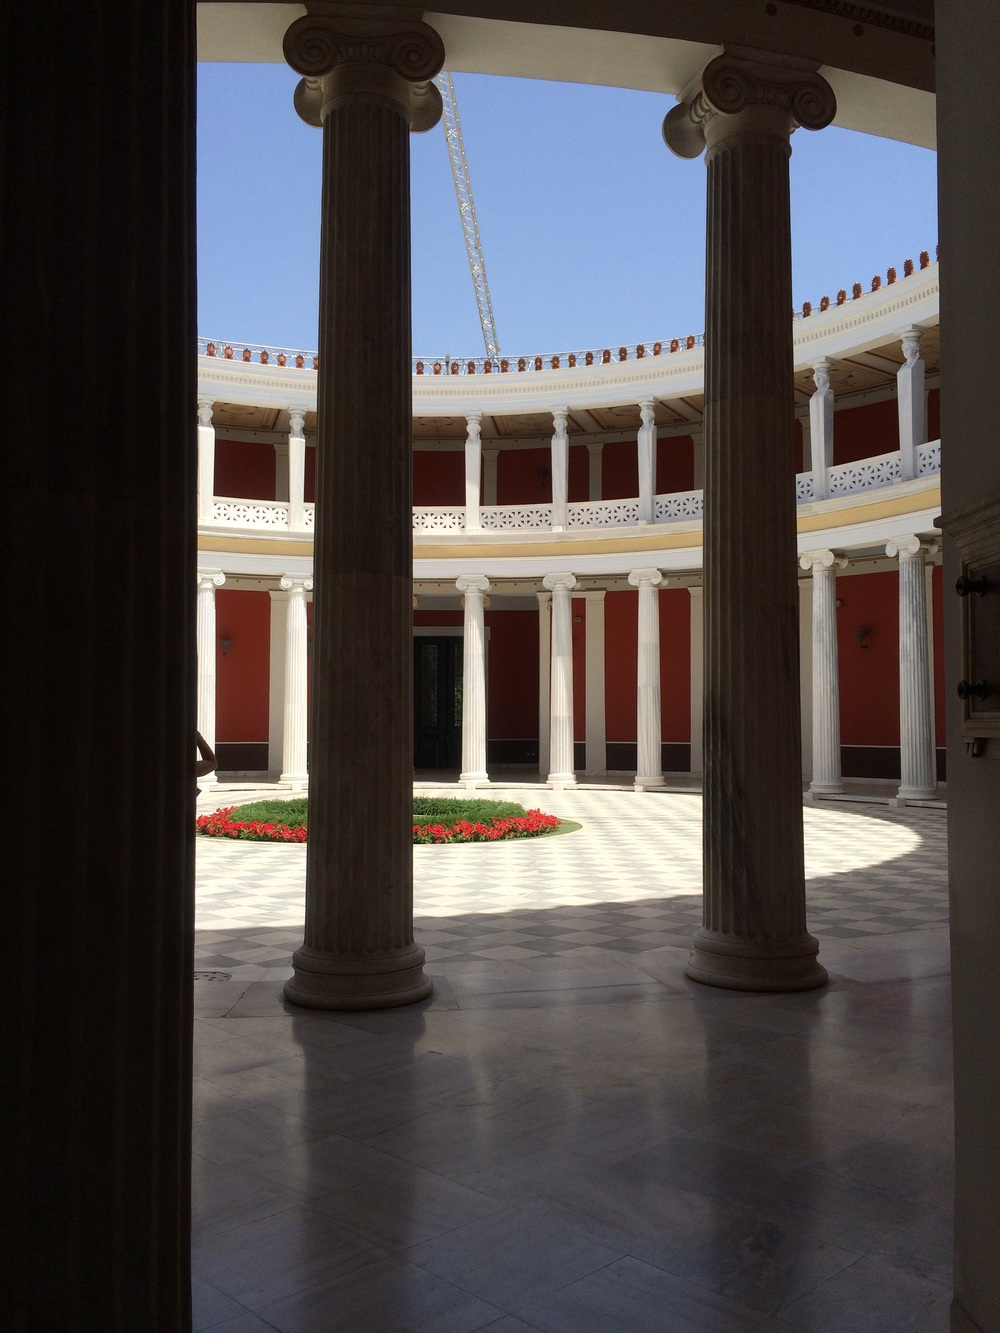 The Zappeion